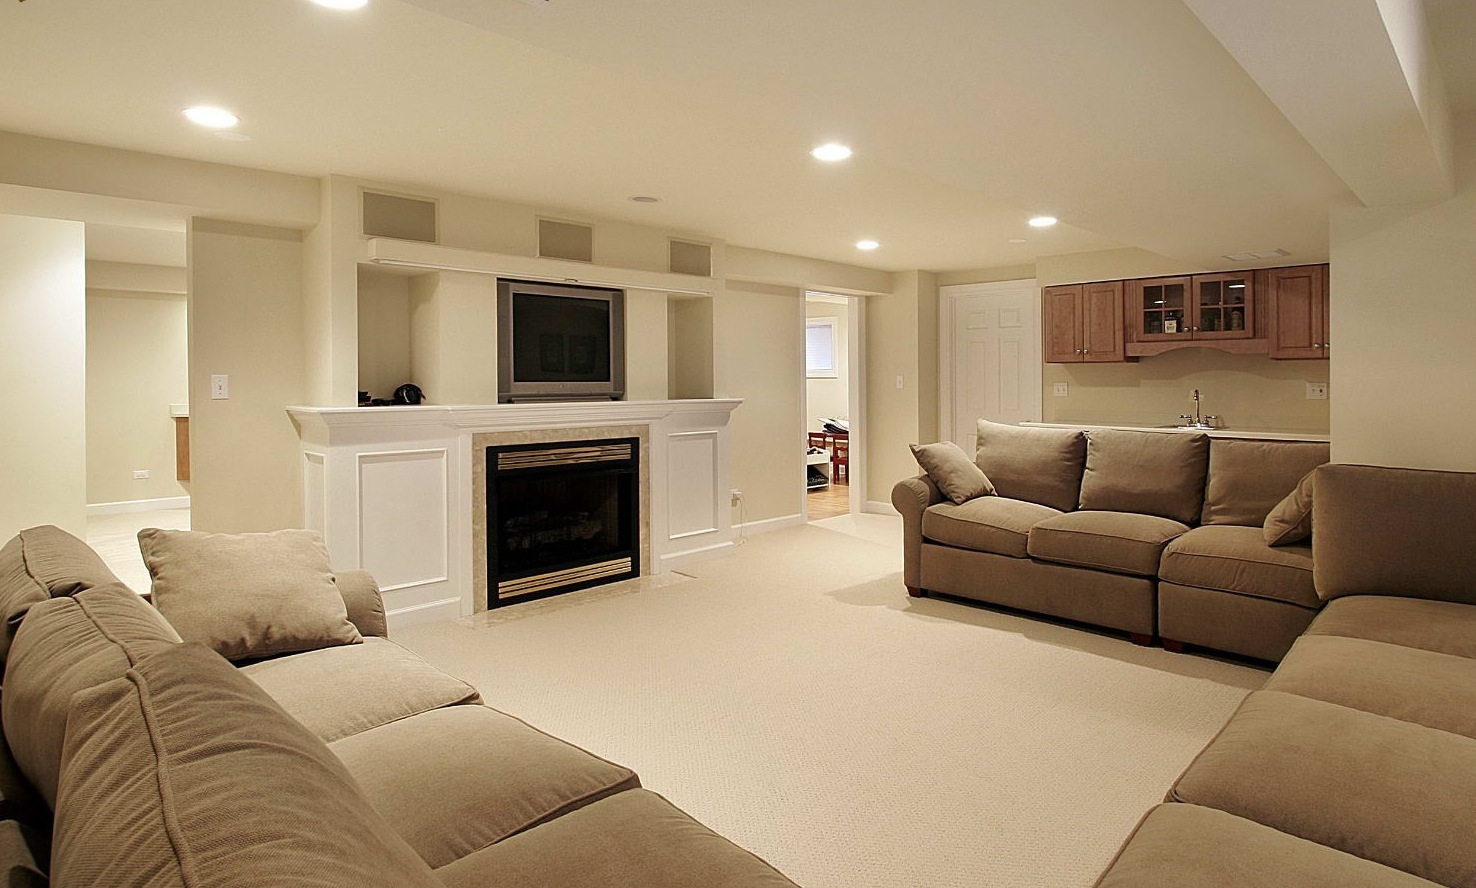 Ideas For Small Basements 30 Basement Remodeling Ideas & Inspiration